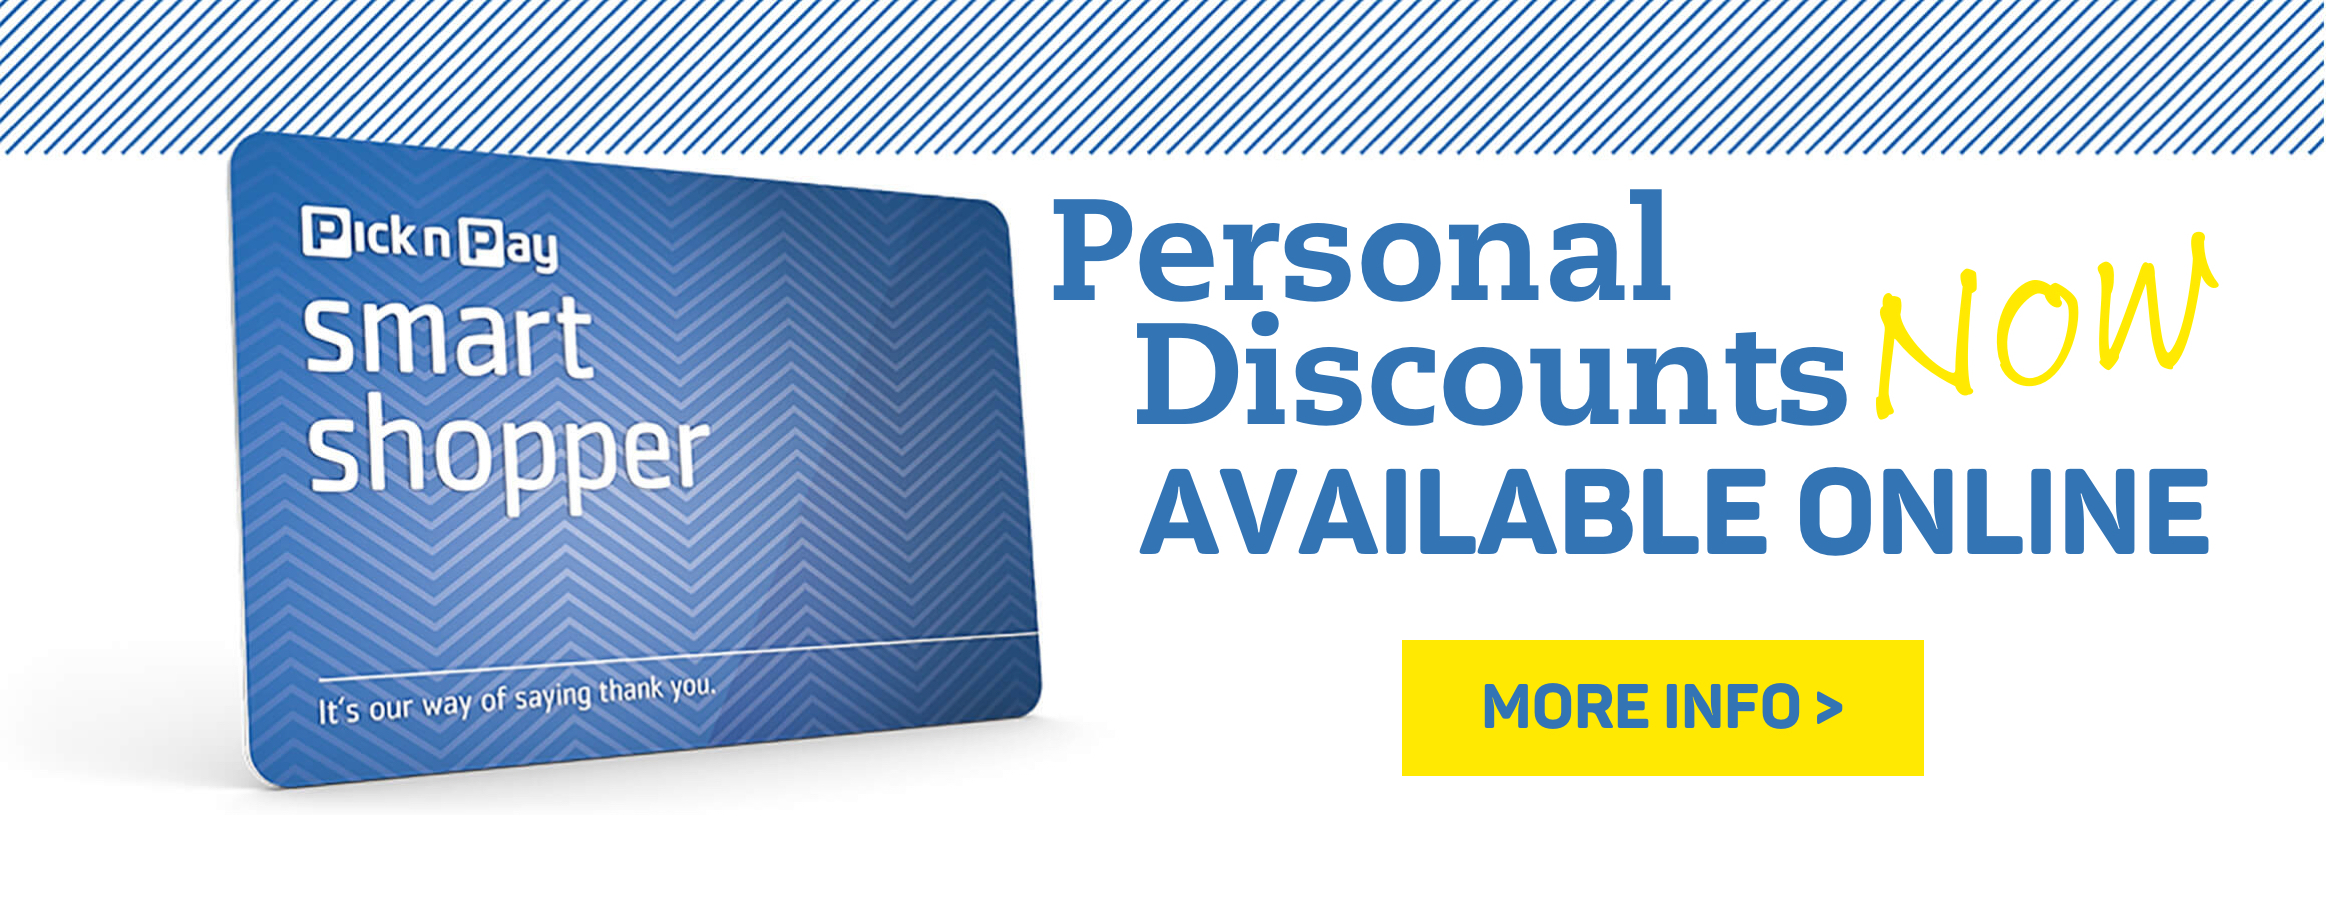 Personal discounts now available online! More info >